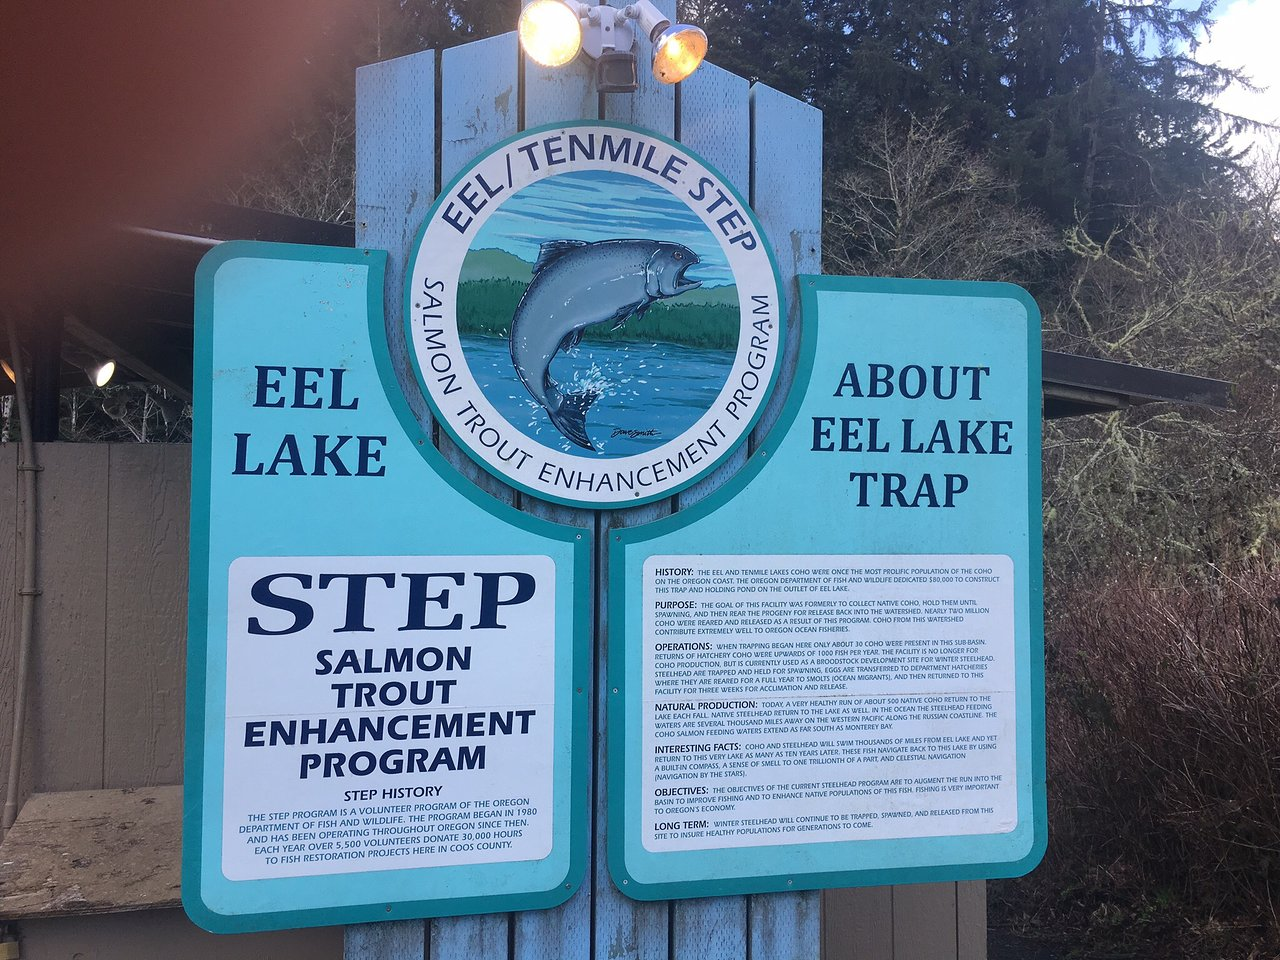 William M Tugman State Park Lakeside 2020 All You Need To Know Before You Go With Photos Tripadvisor